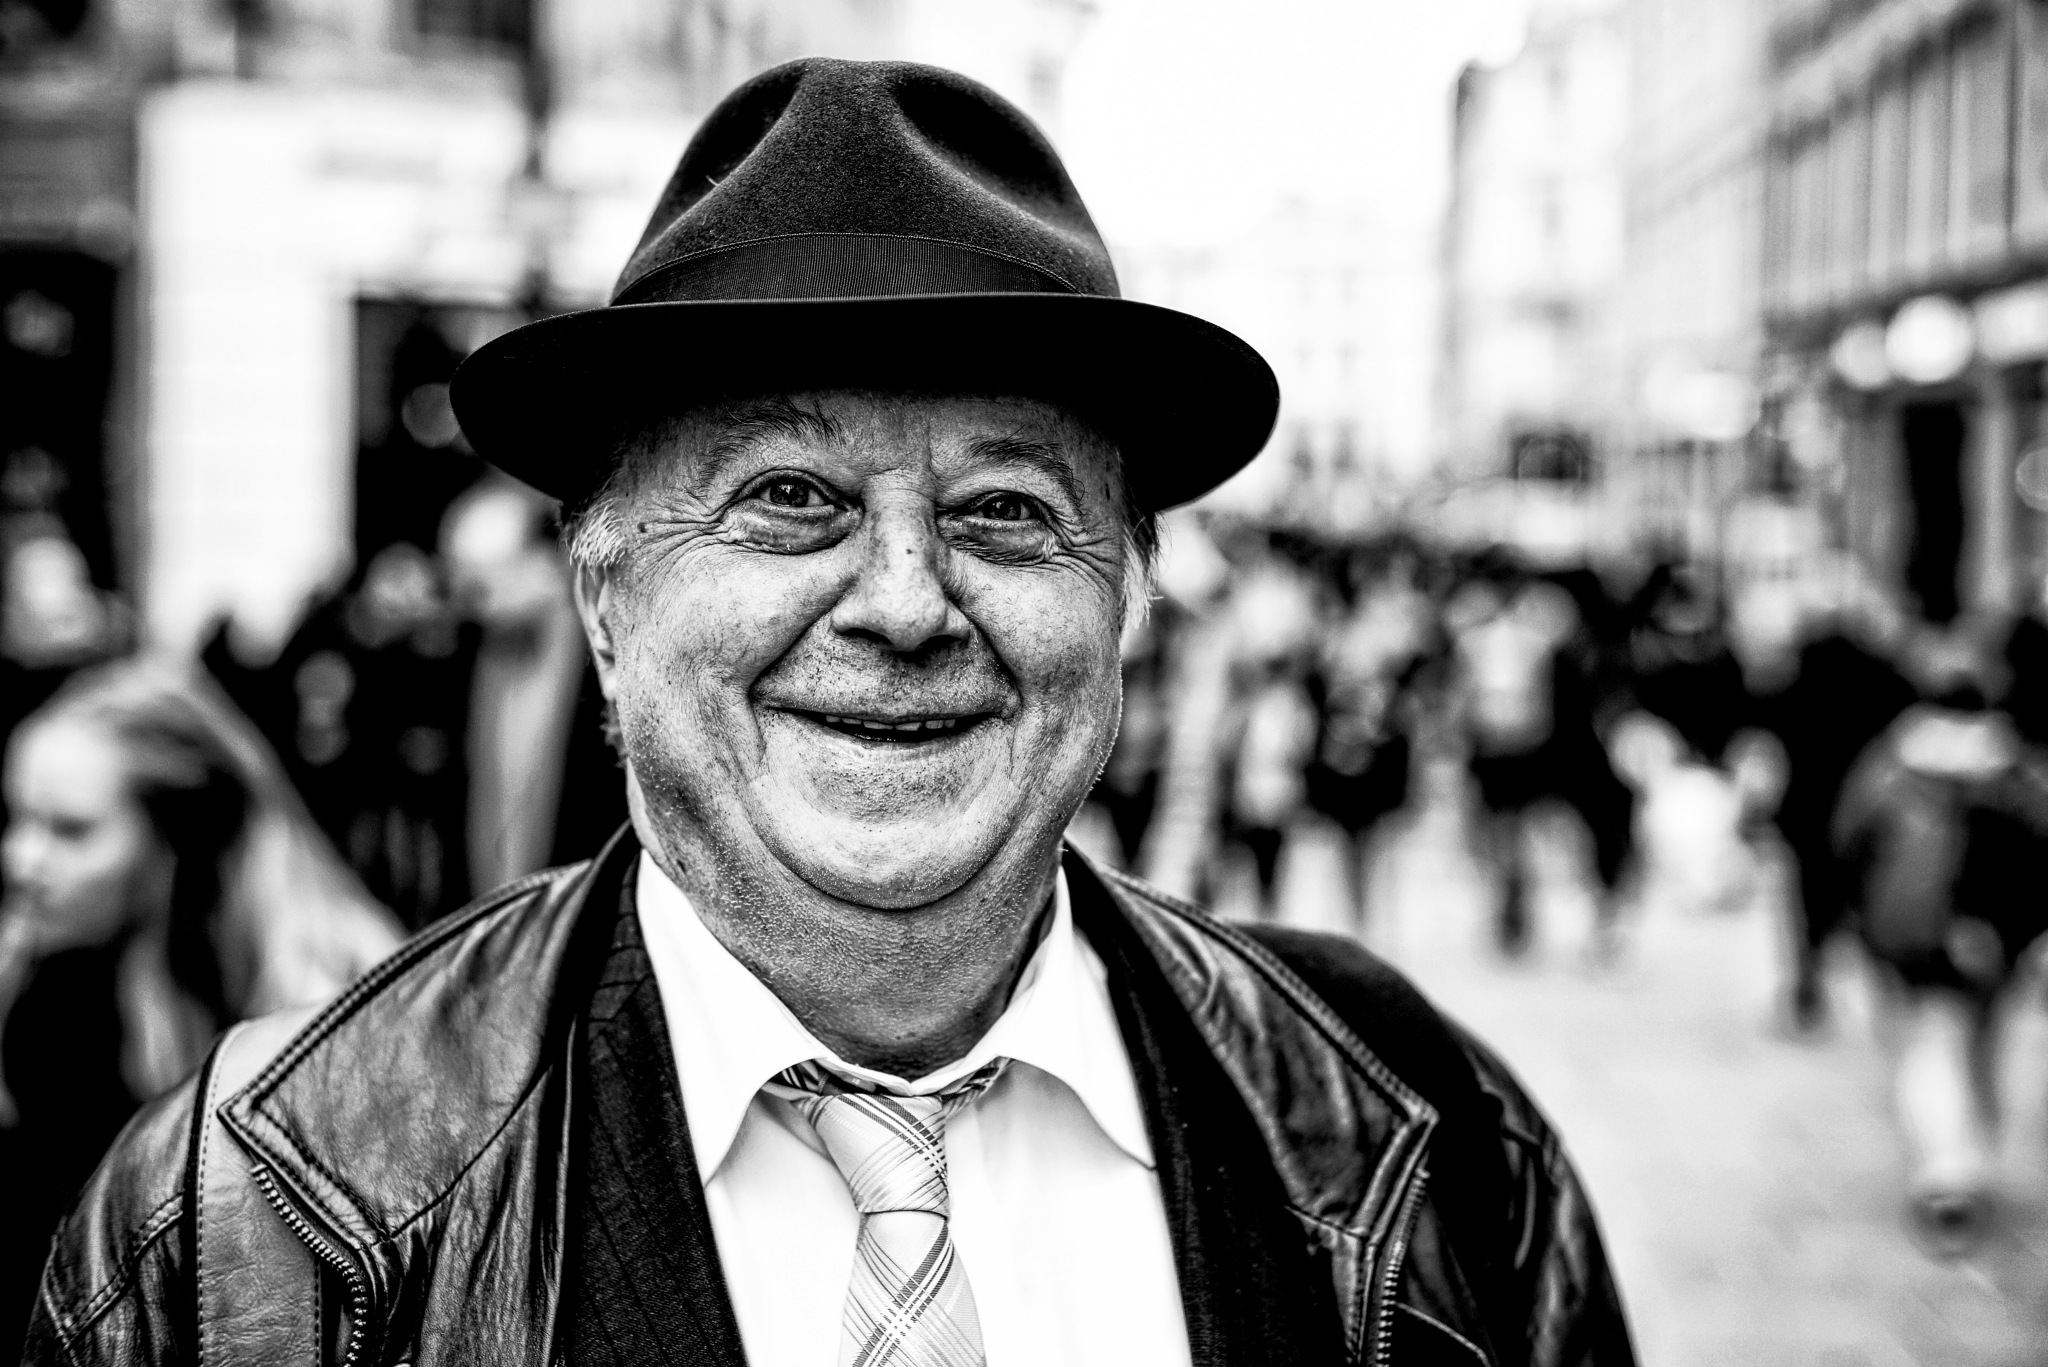 The Smiling Man  by Goran Jorganovich